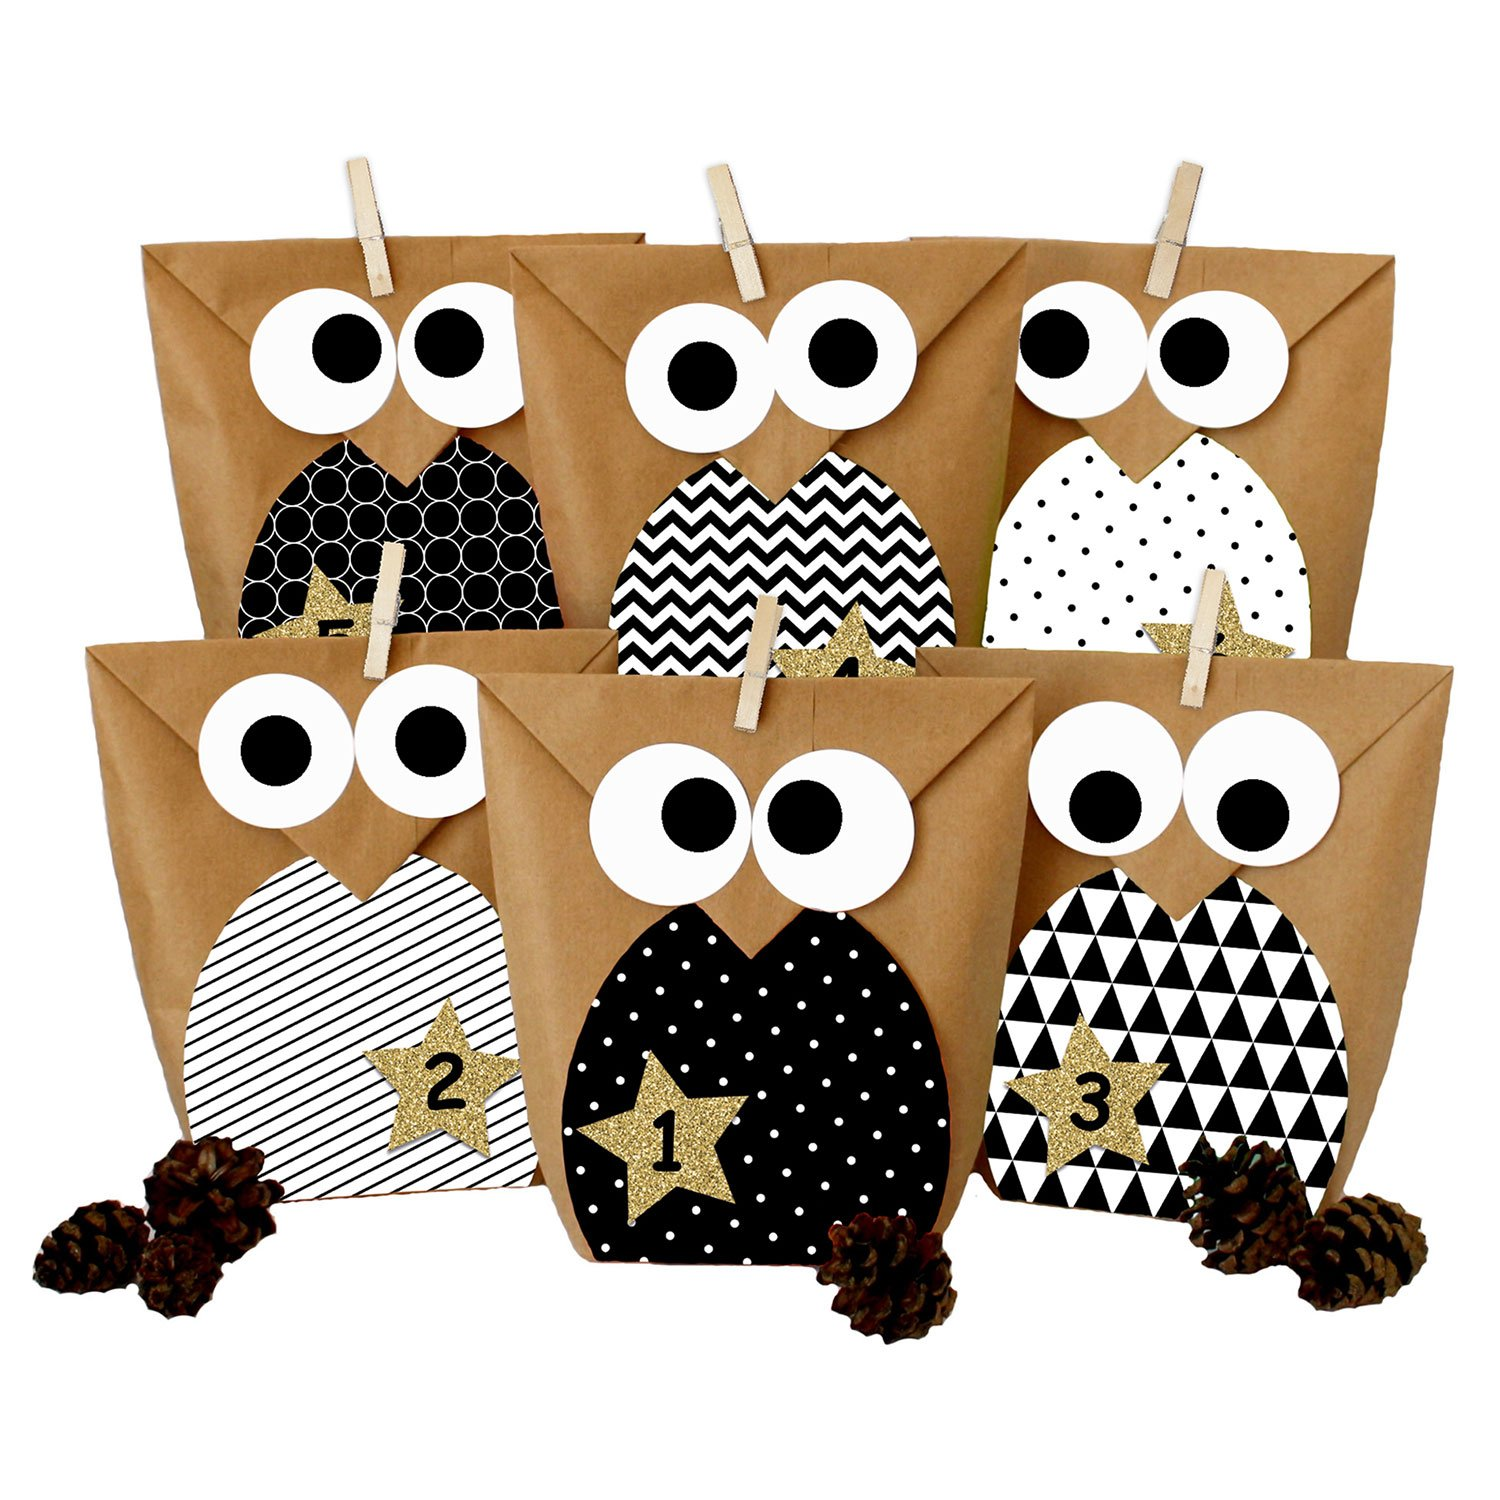 DIY Advent calendar - Christmas owls black and white – Advent calendar for making and filling